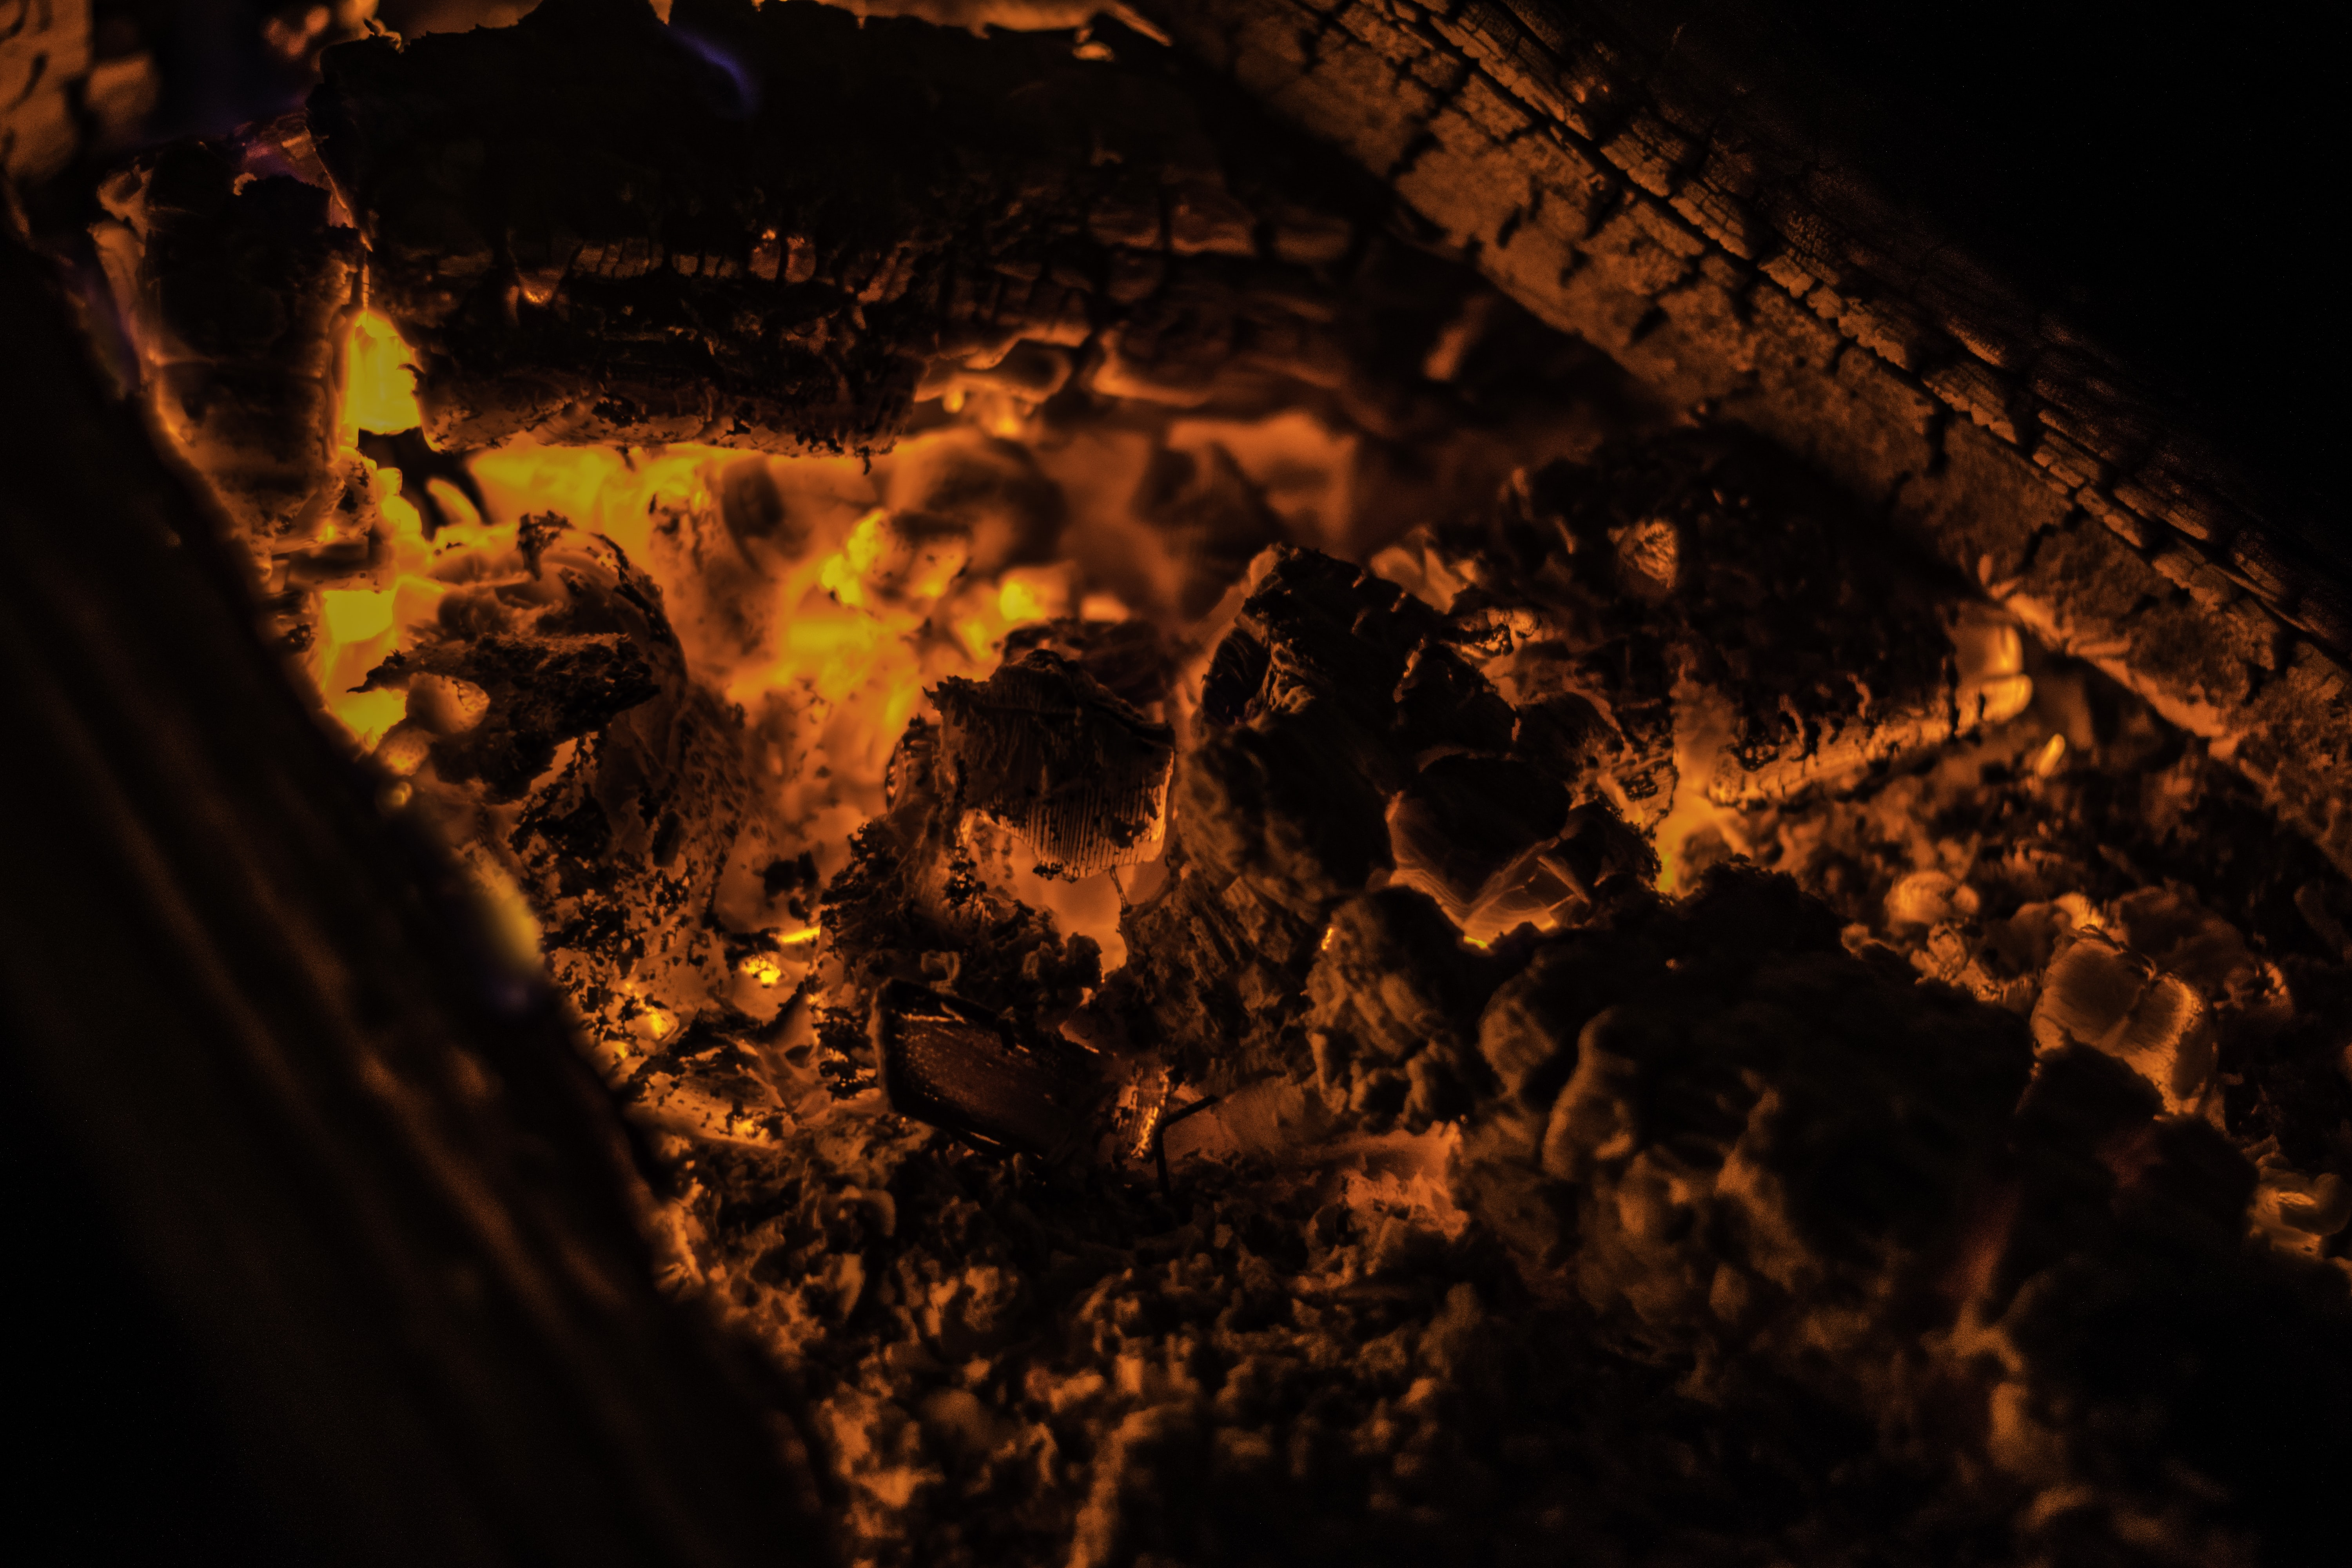 Glowing embers on hot logs in a fireplace